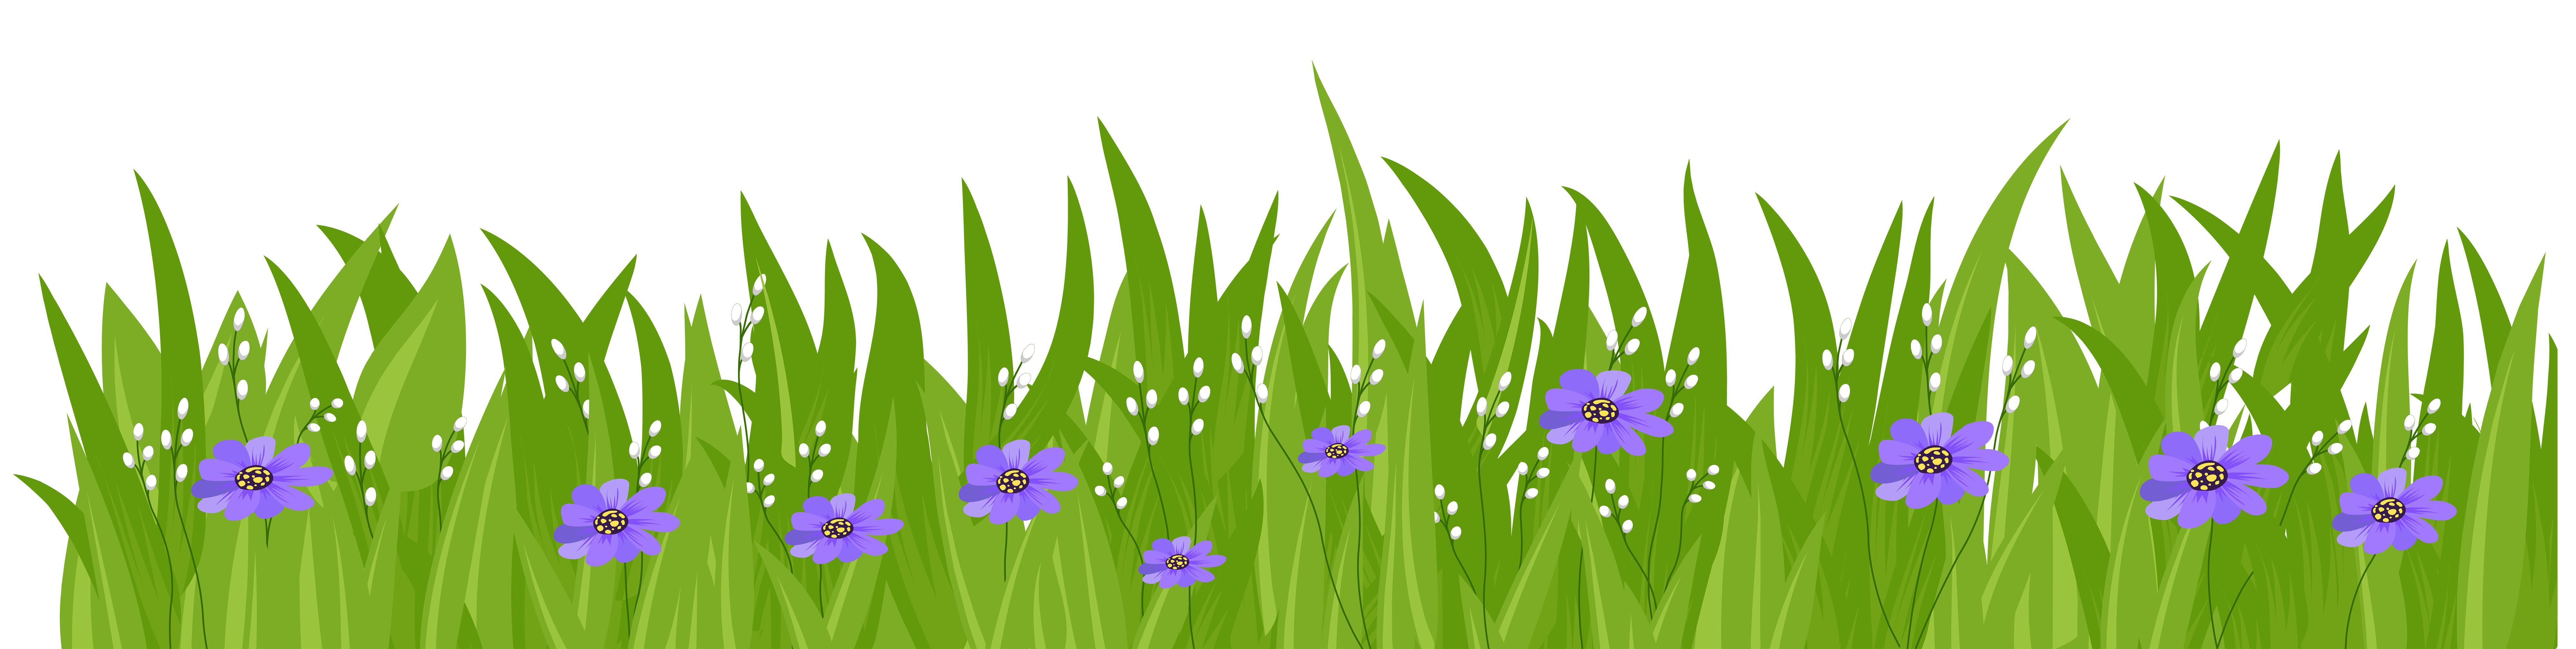 Flower and grass clipart png freeuse download Grass with Purple Flowers Transparent PNG Clip Art Image | Gallery ... png freeuse download